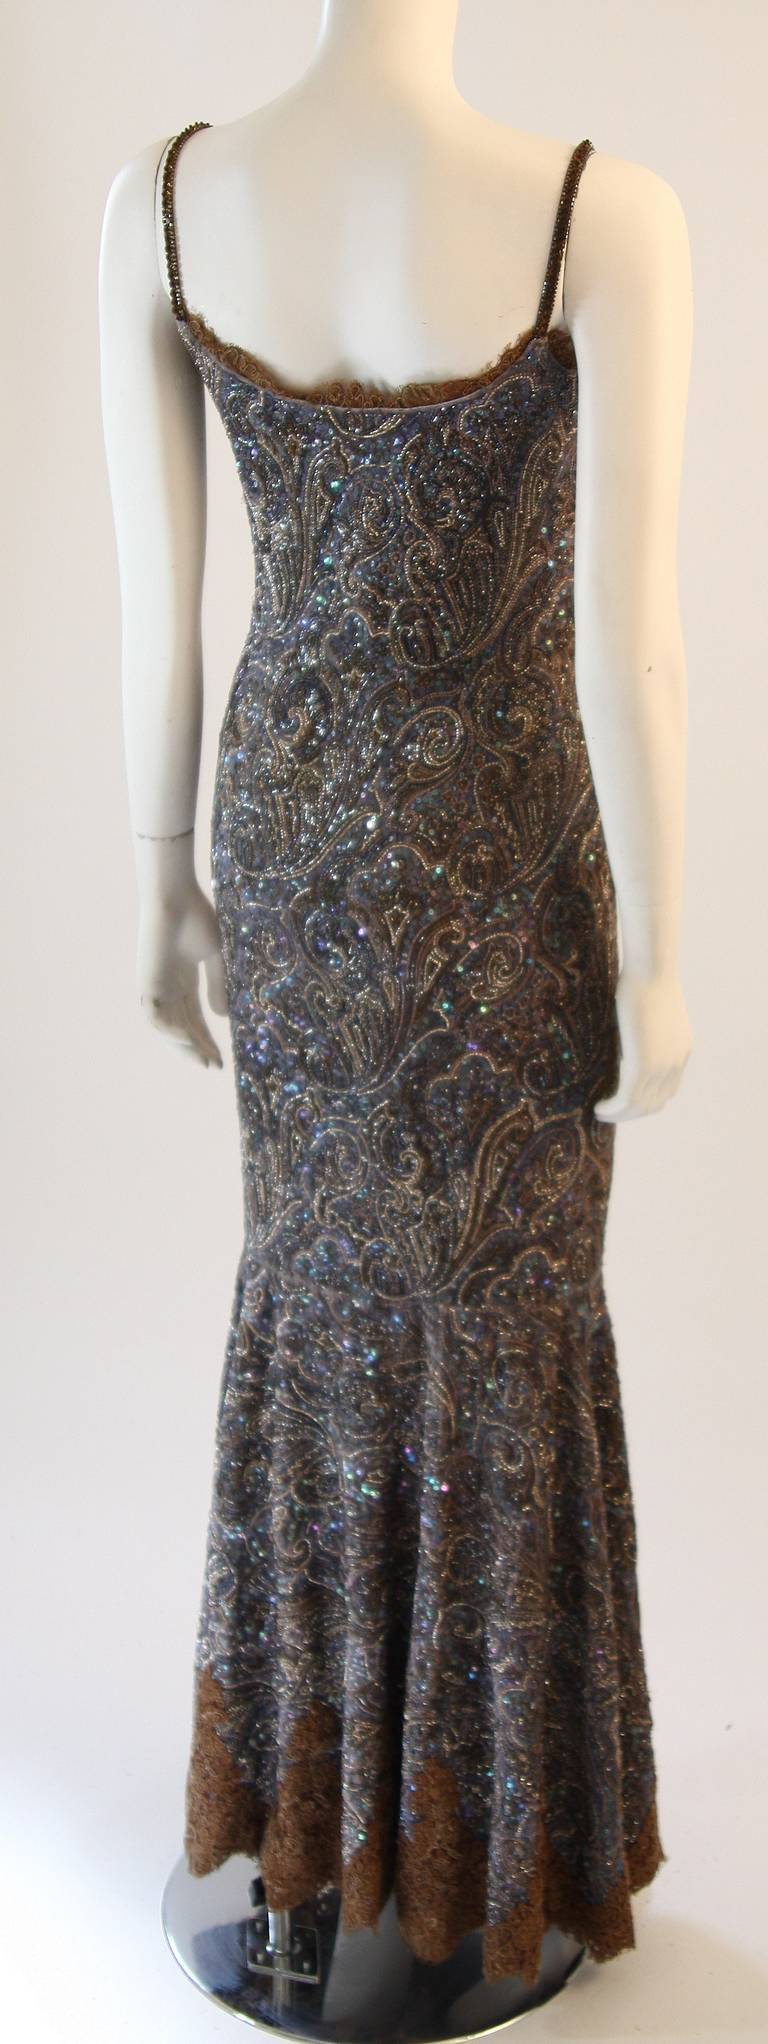 RANDI RAHM COUTURE Purple Sequin Hand Beaded Velvet Paisley Gown Size 4-6 8